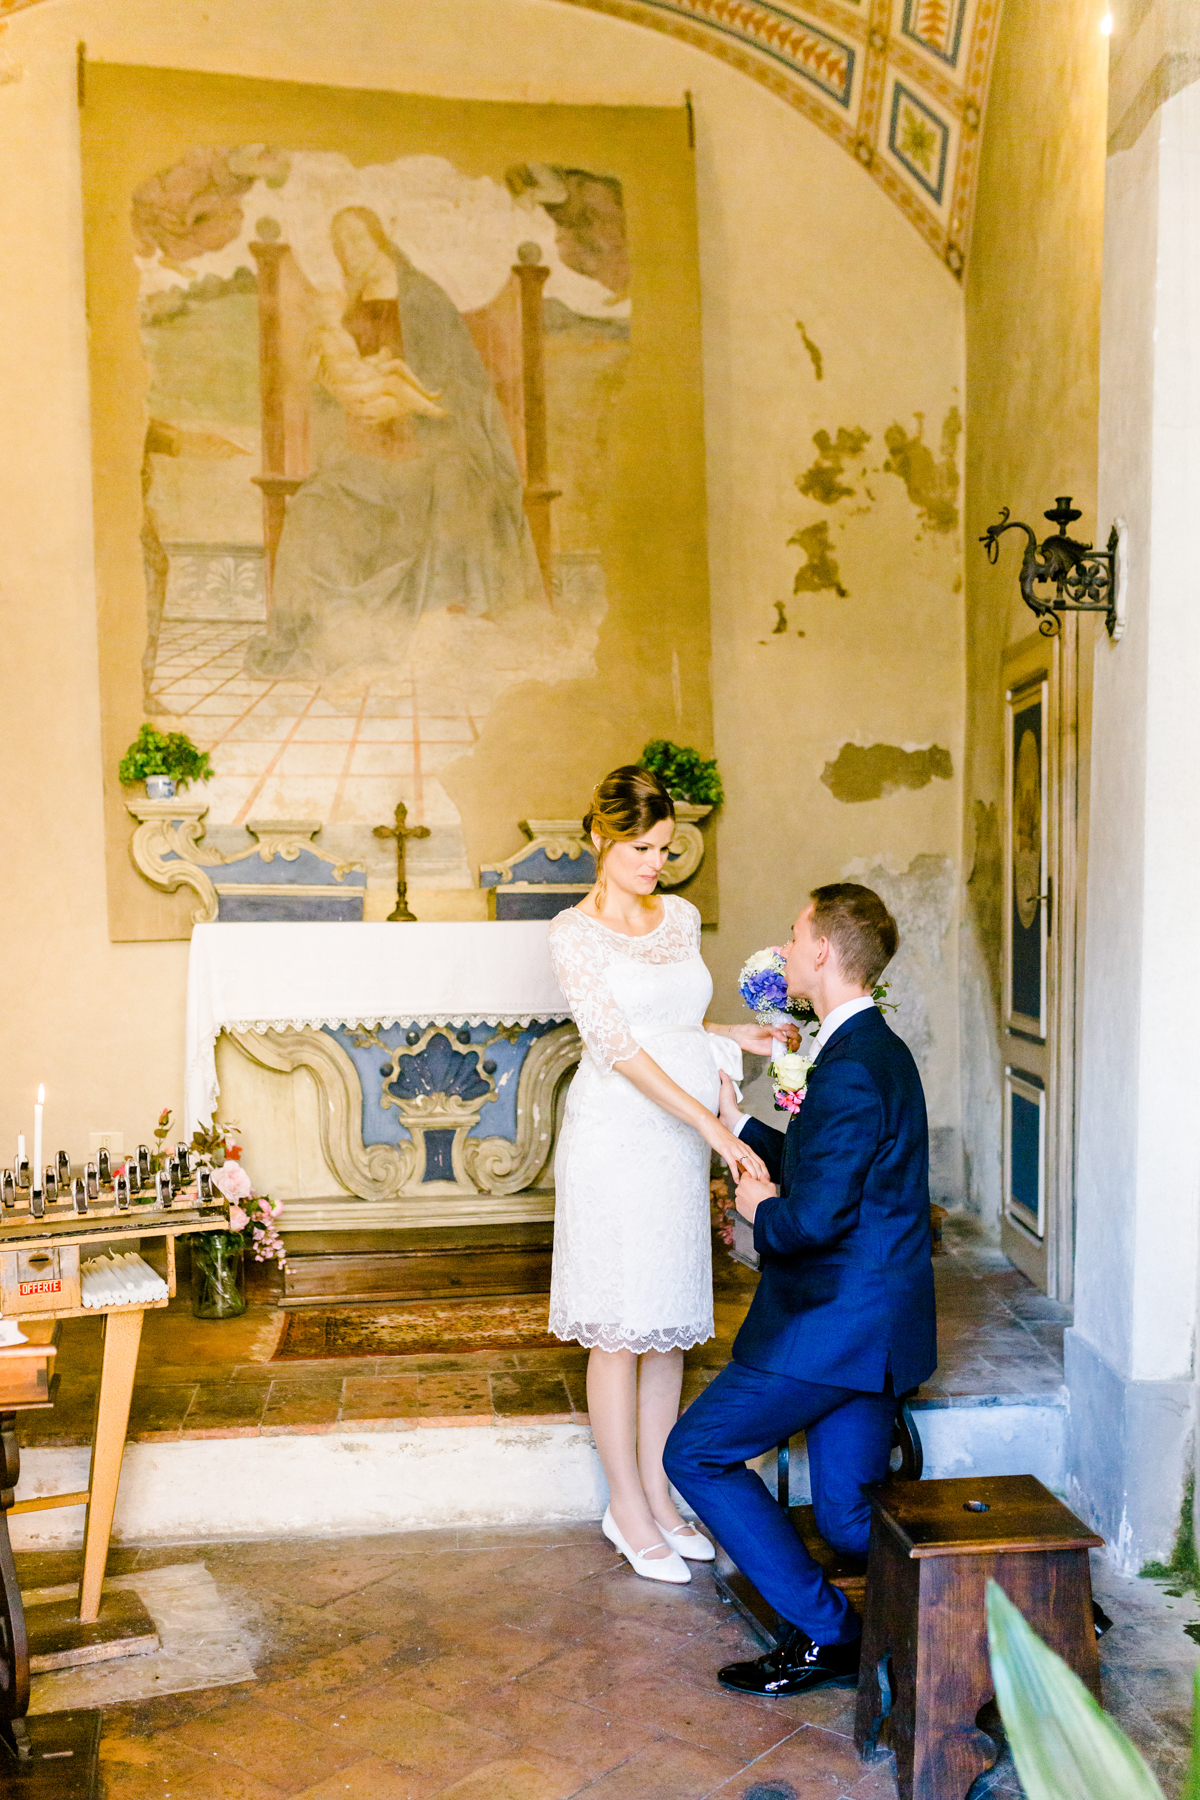 Romy_Alfons_Destination_Wedding_Tuscany_Toskana_Italy_me_him_photography-261